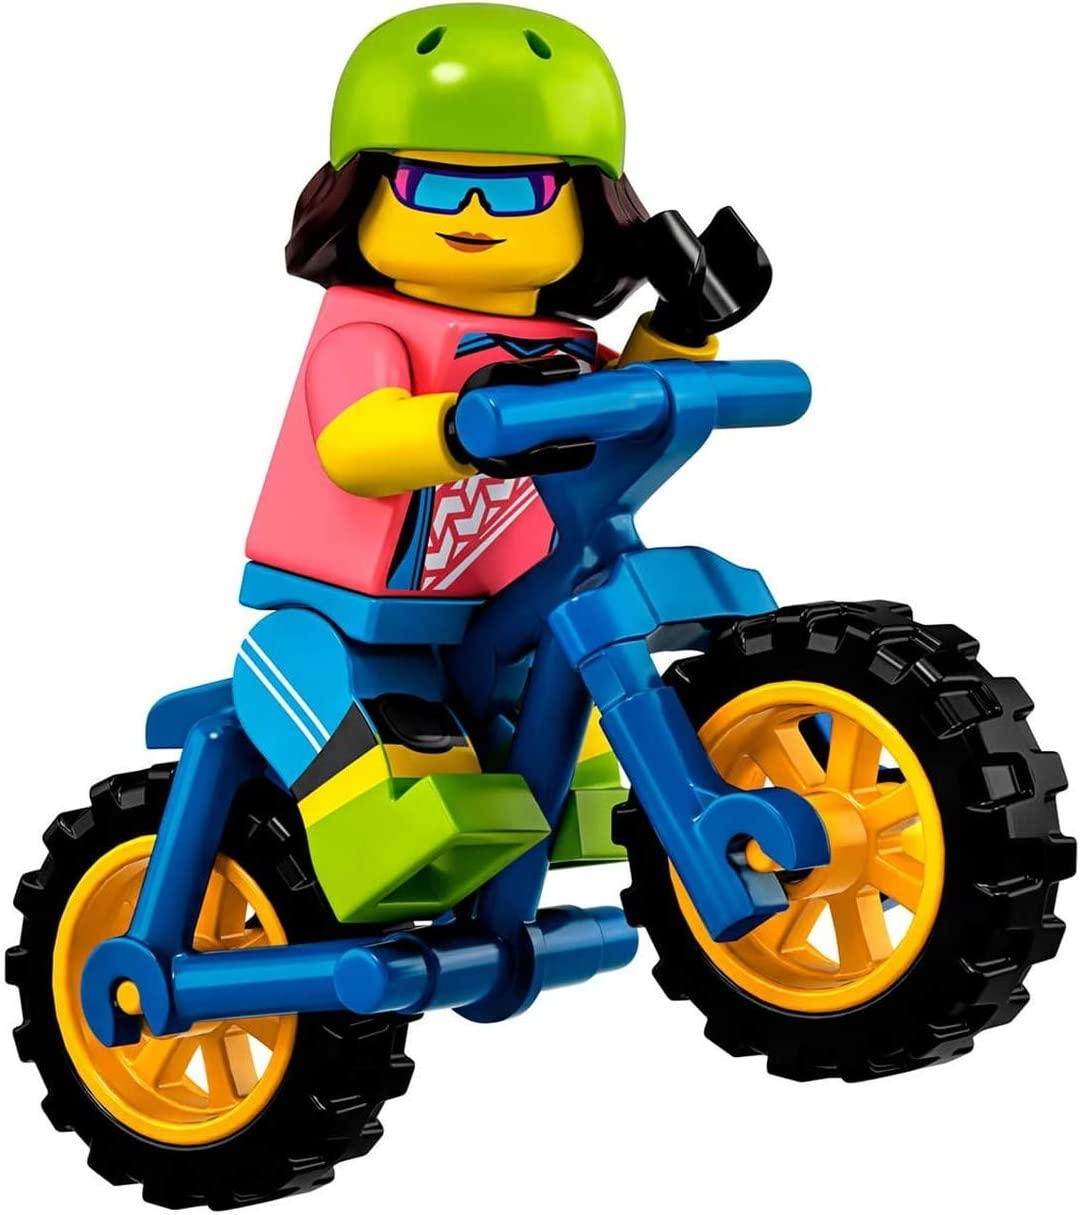 Lego Green Minifigure Bicycle Riding Brand New